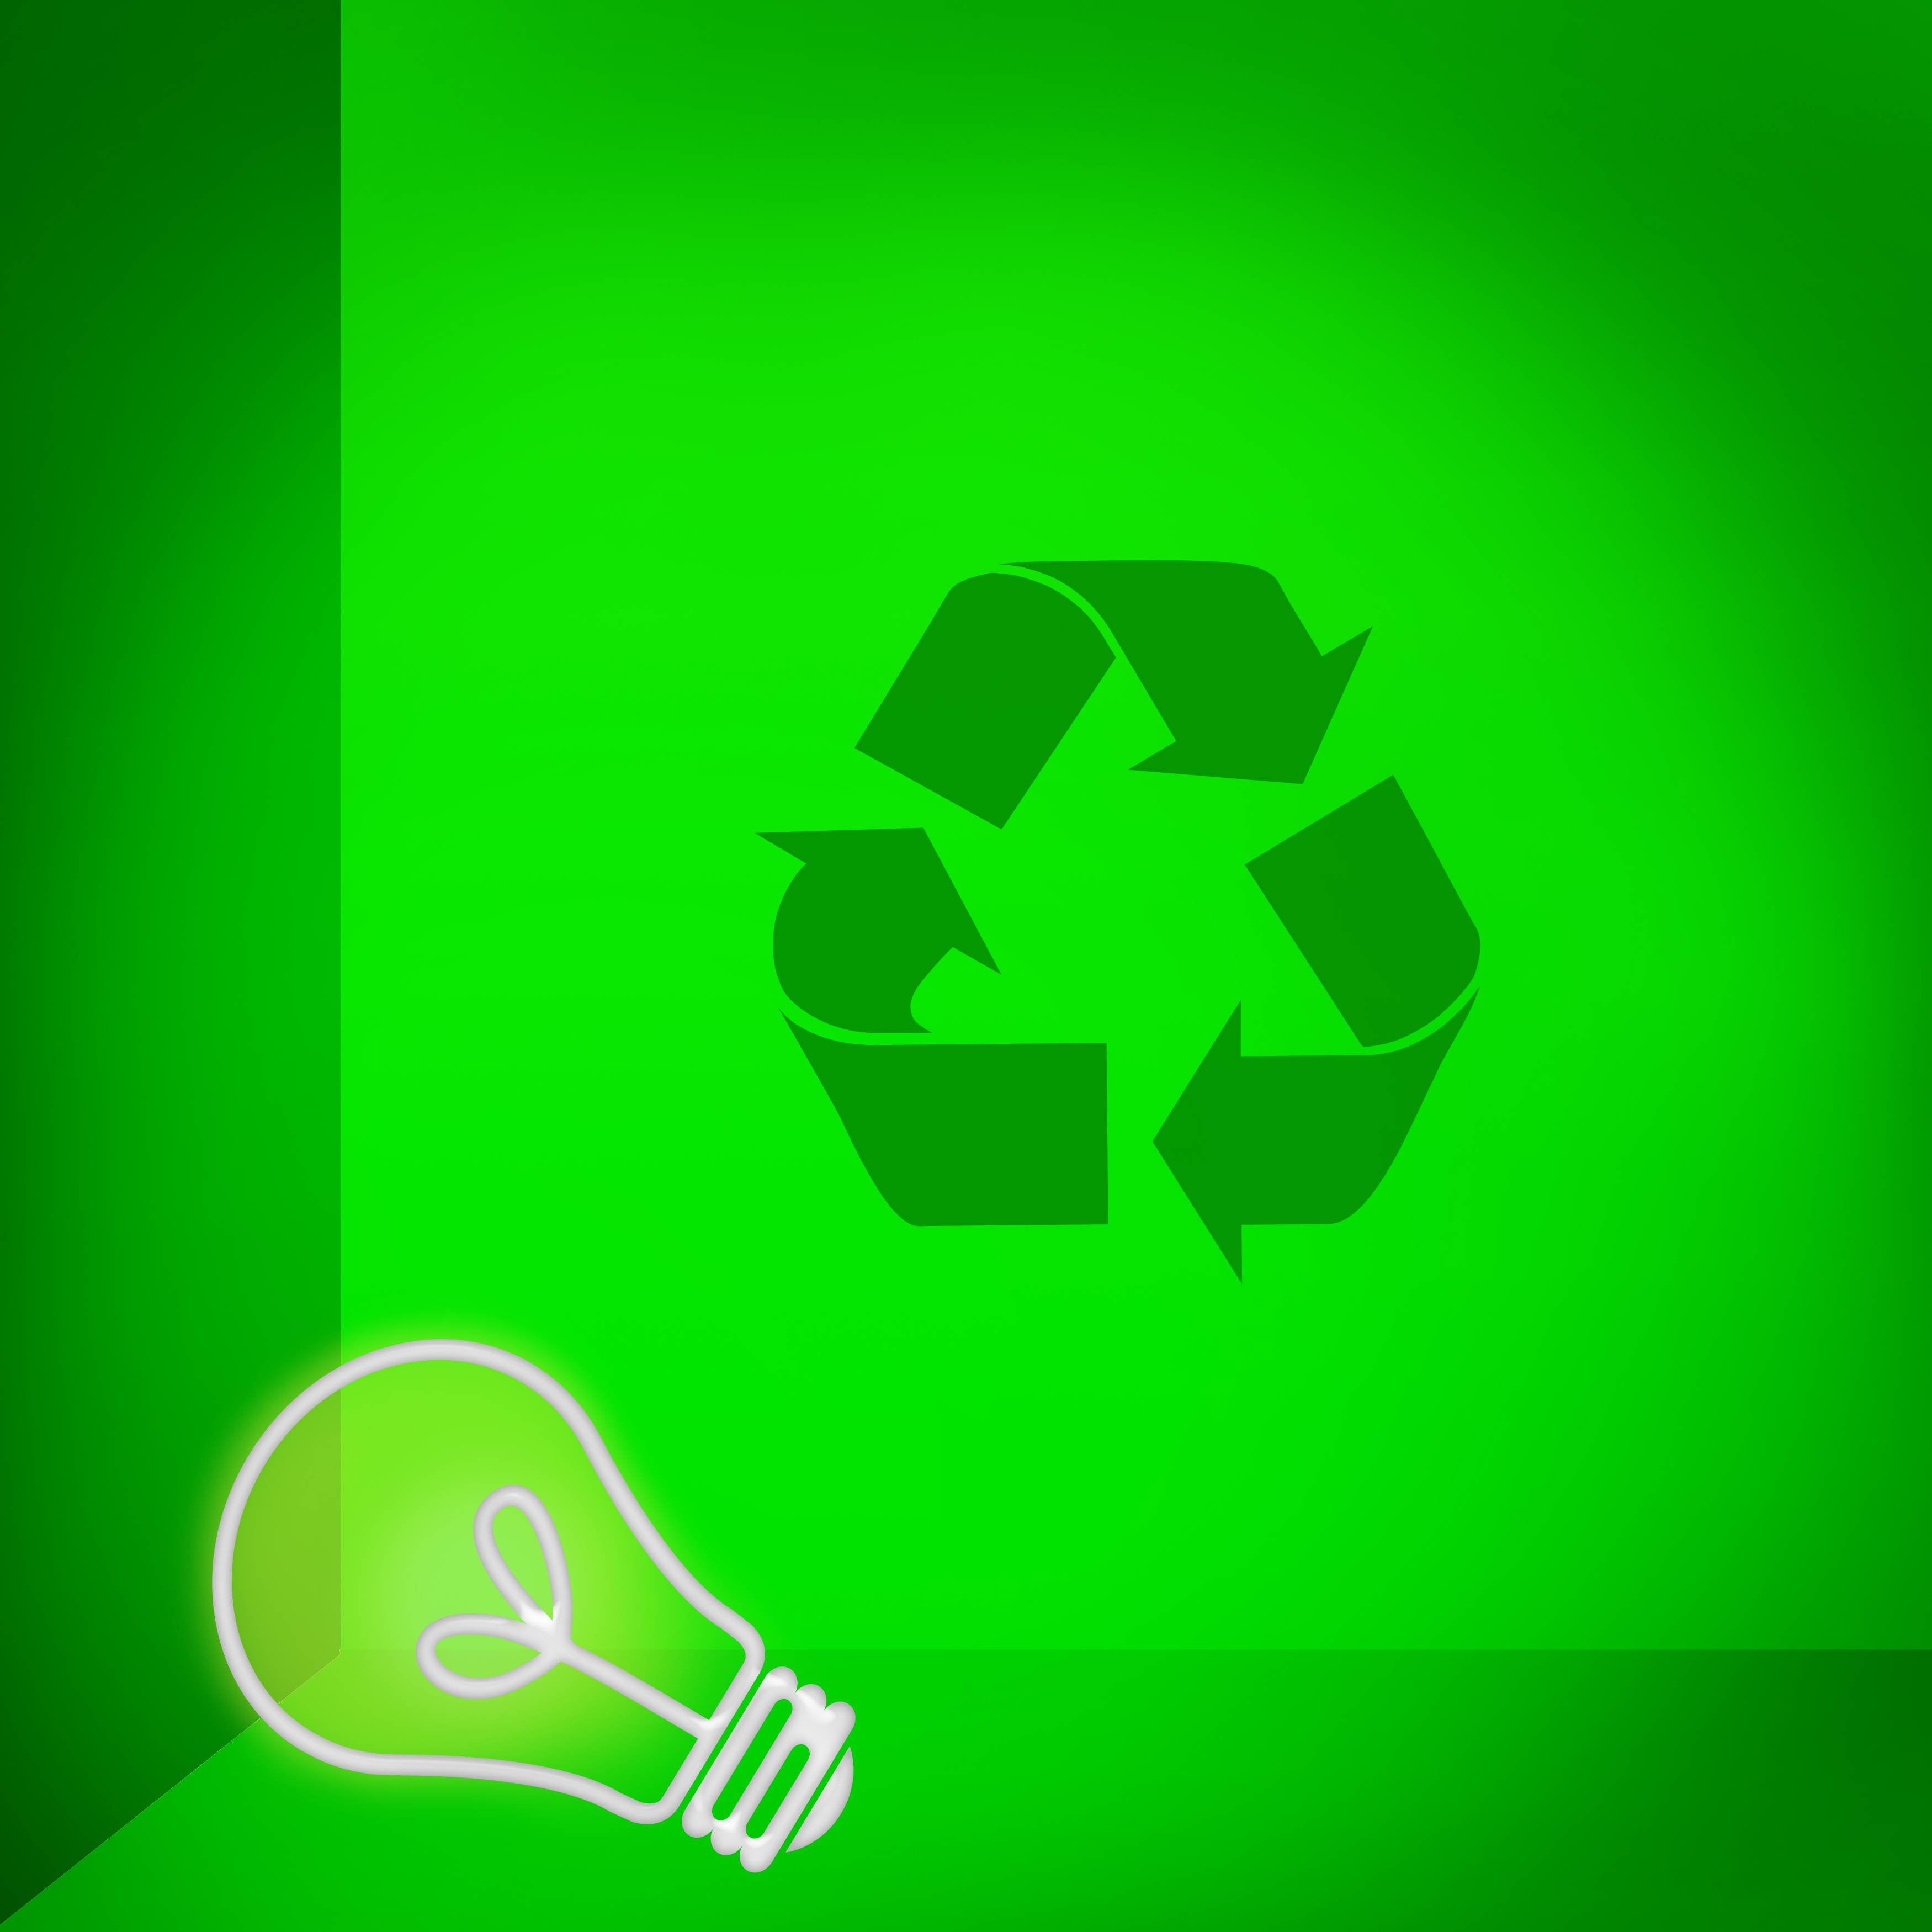 Taking energy efficiency seriously can create real profit